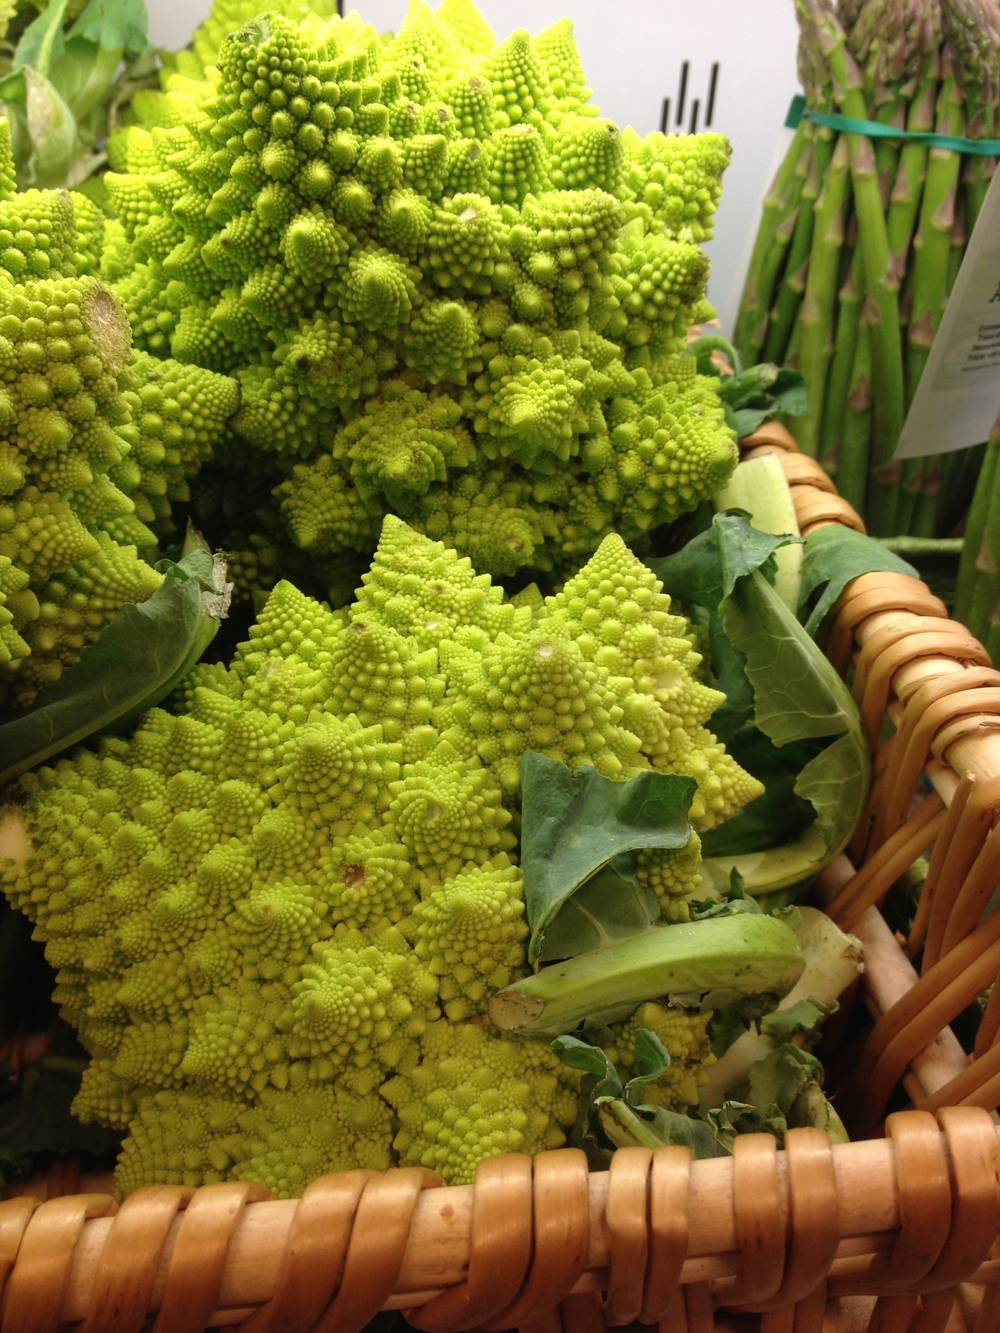 So enamored by these funny cauliflower florets. Nature is amazing.